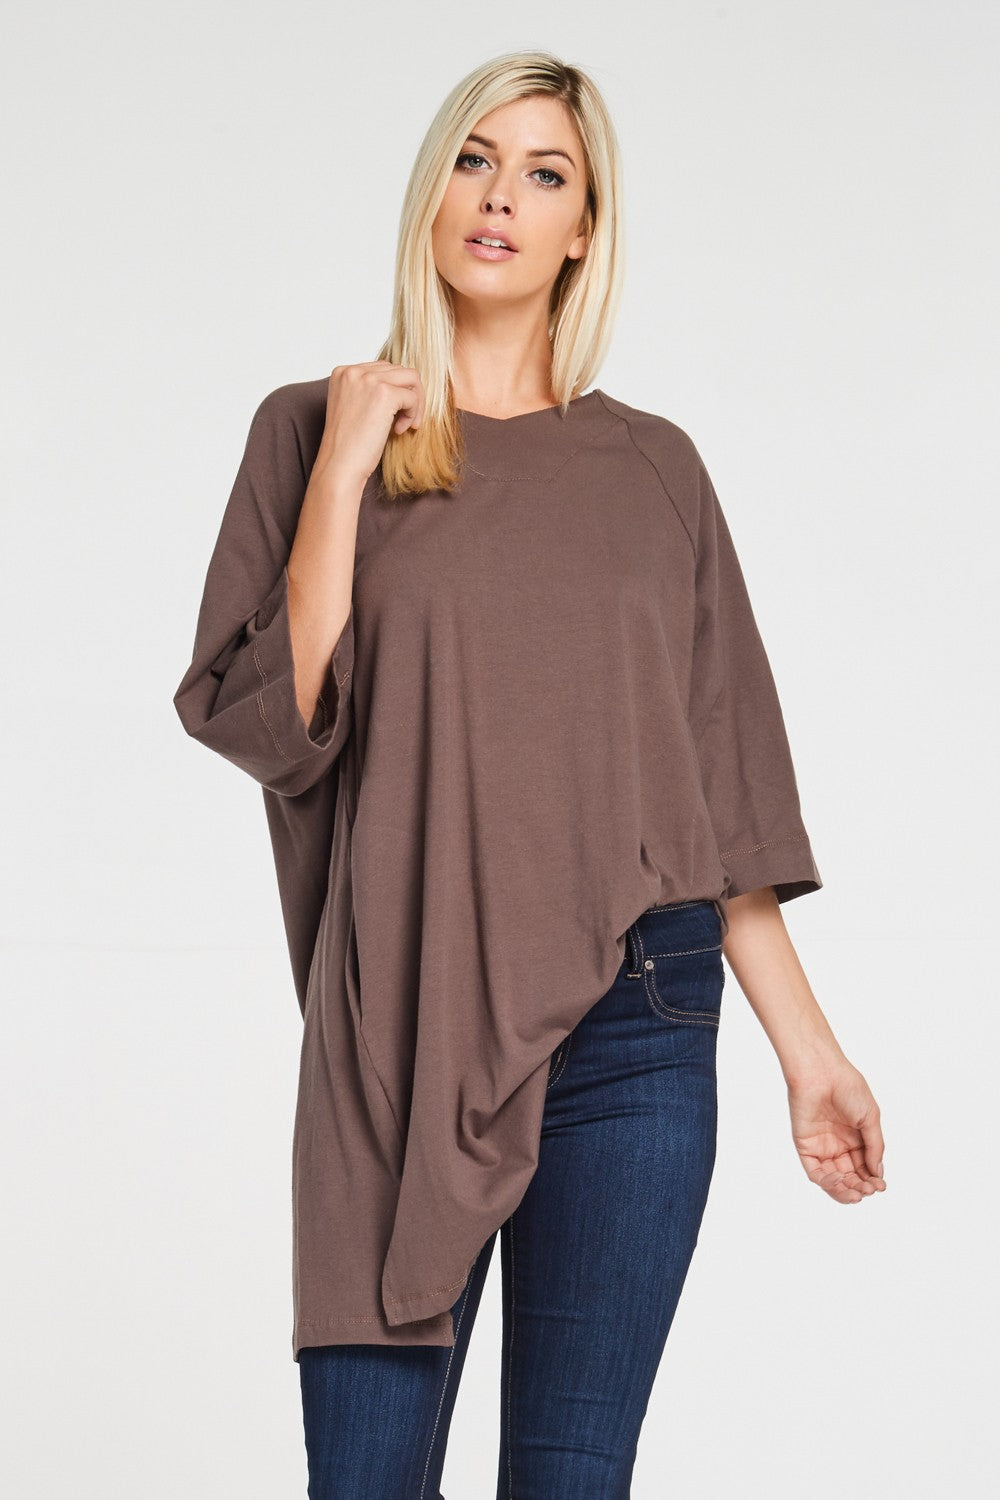 3/4 Sleeve Cotton Tulip Tunic Top